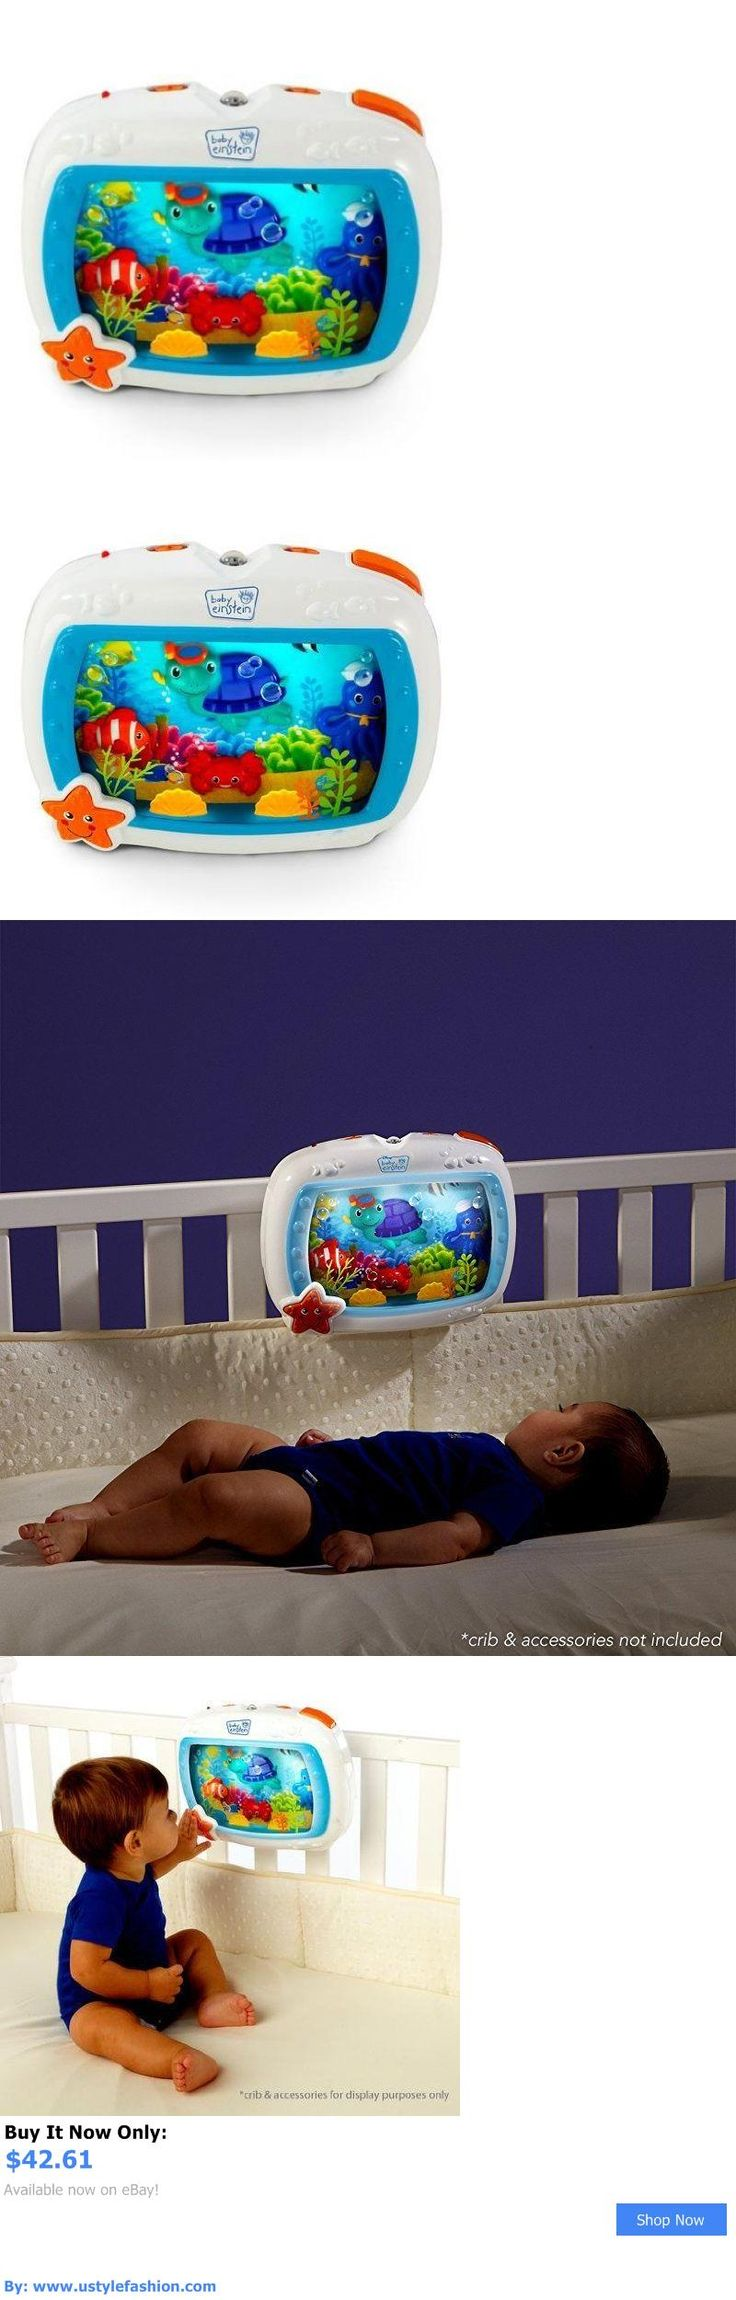 Crib Toys: Baby Einstein Sea Dreams Soother New Free Shipping BUY IT NOW ONLY: $42.61 #ustylefashionCribToys OR #ustylefashion